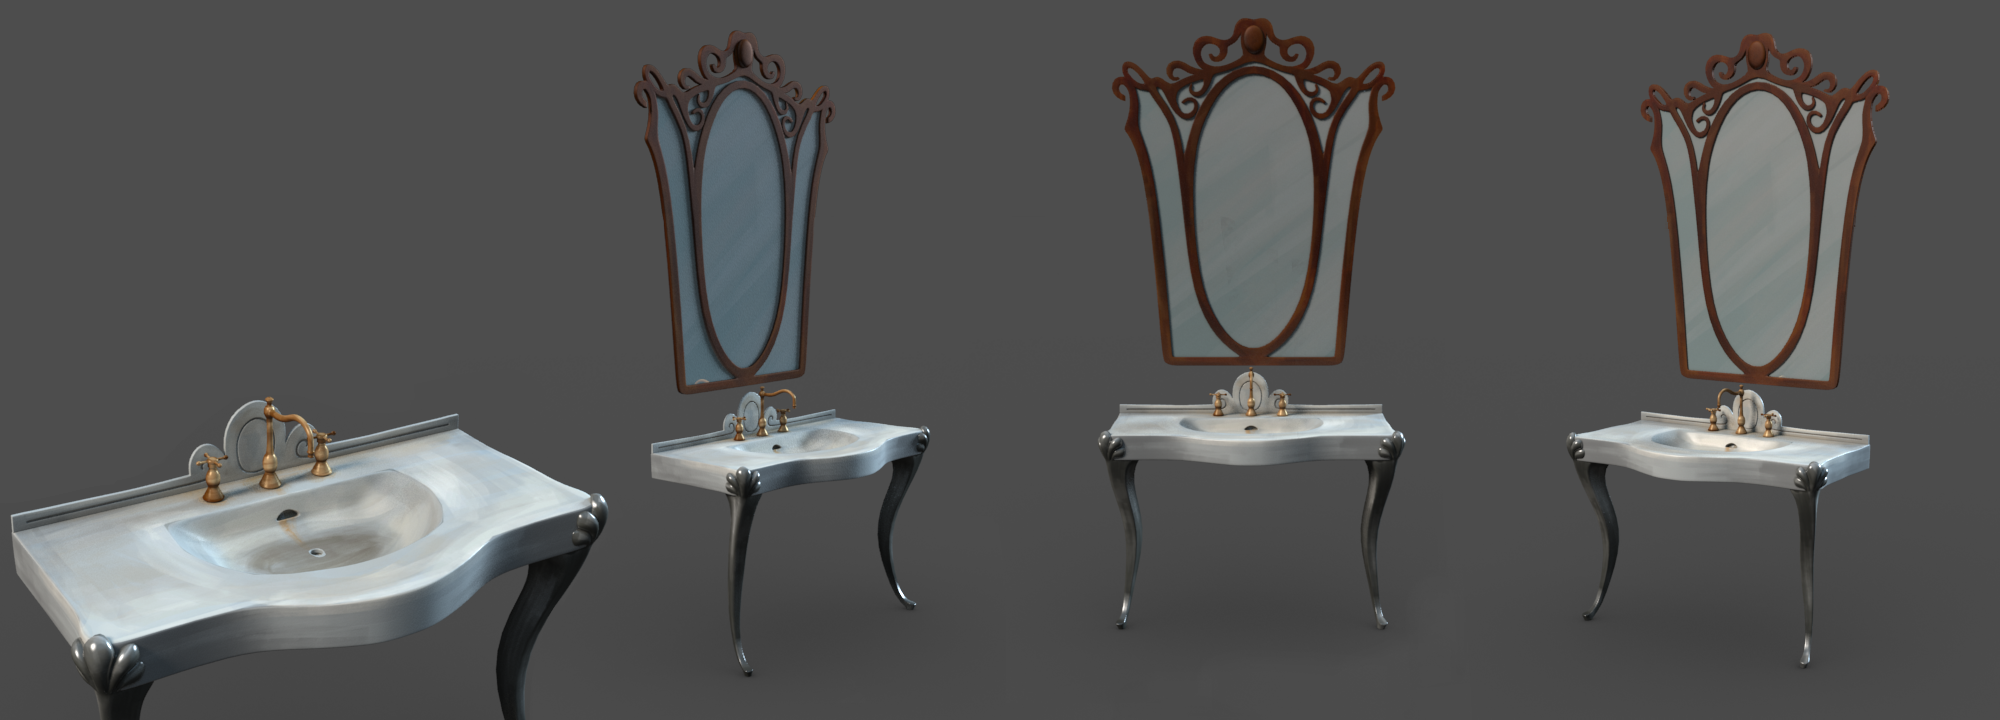 Sink & Mirror Render